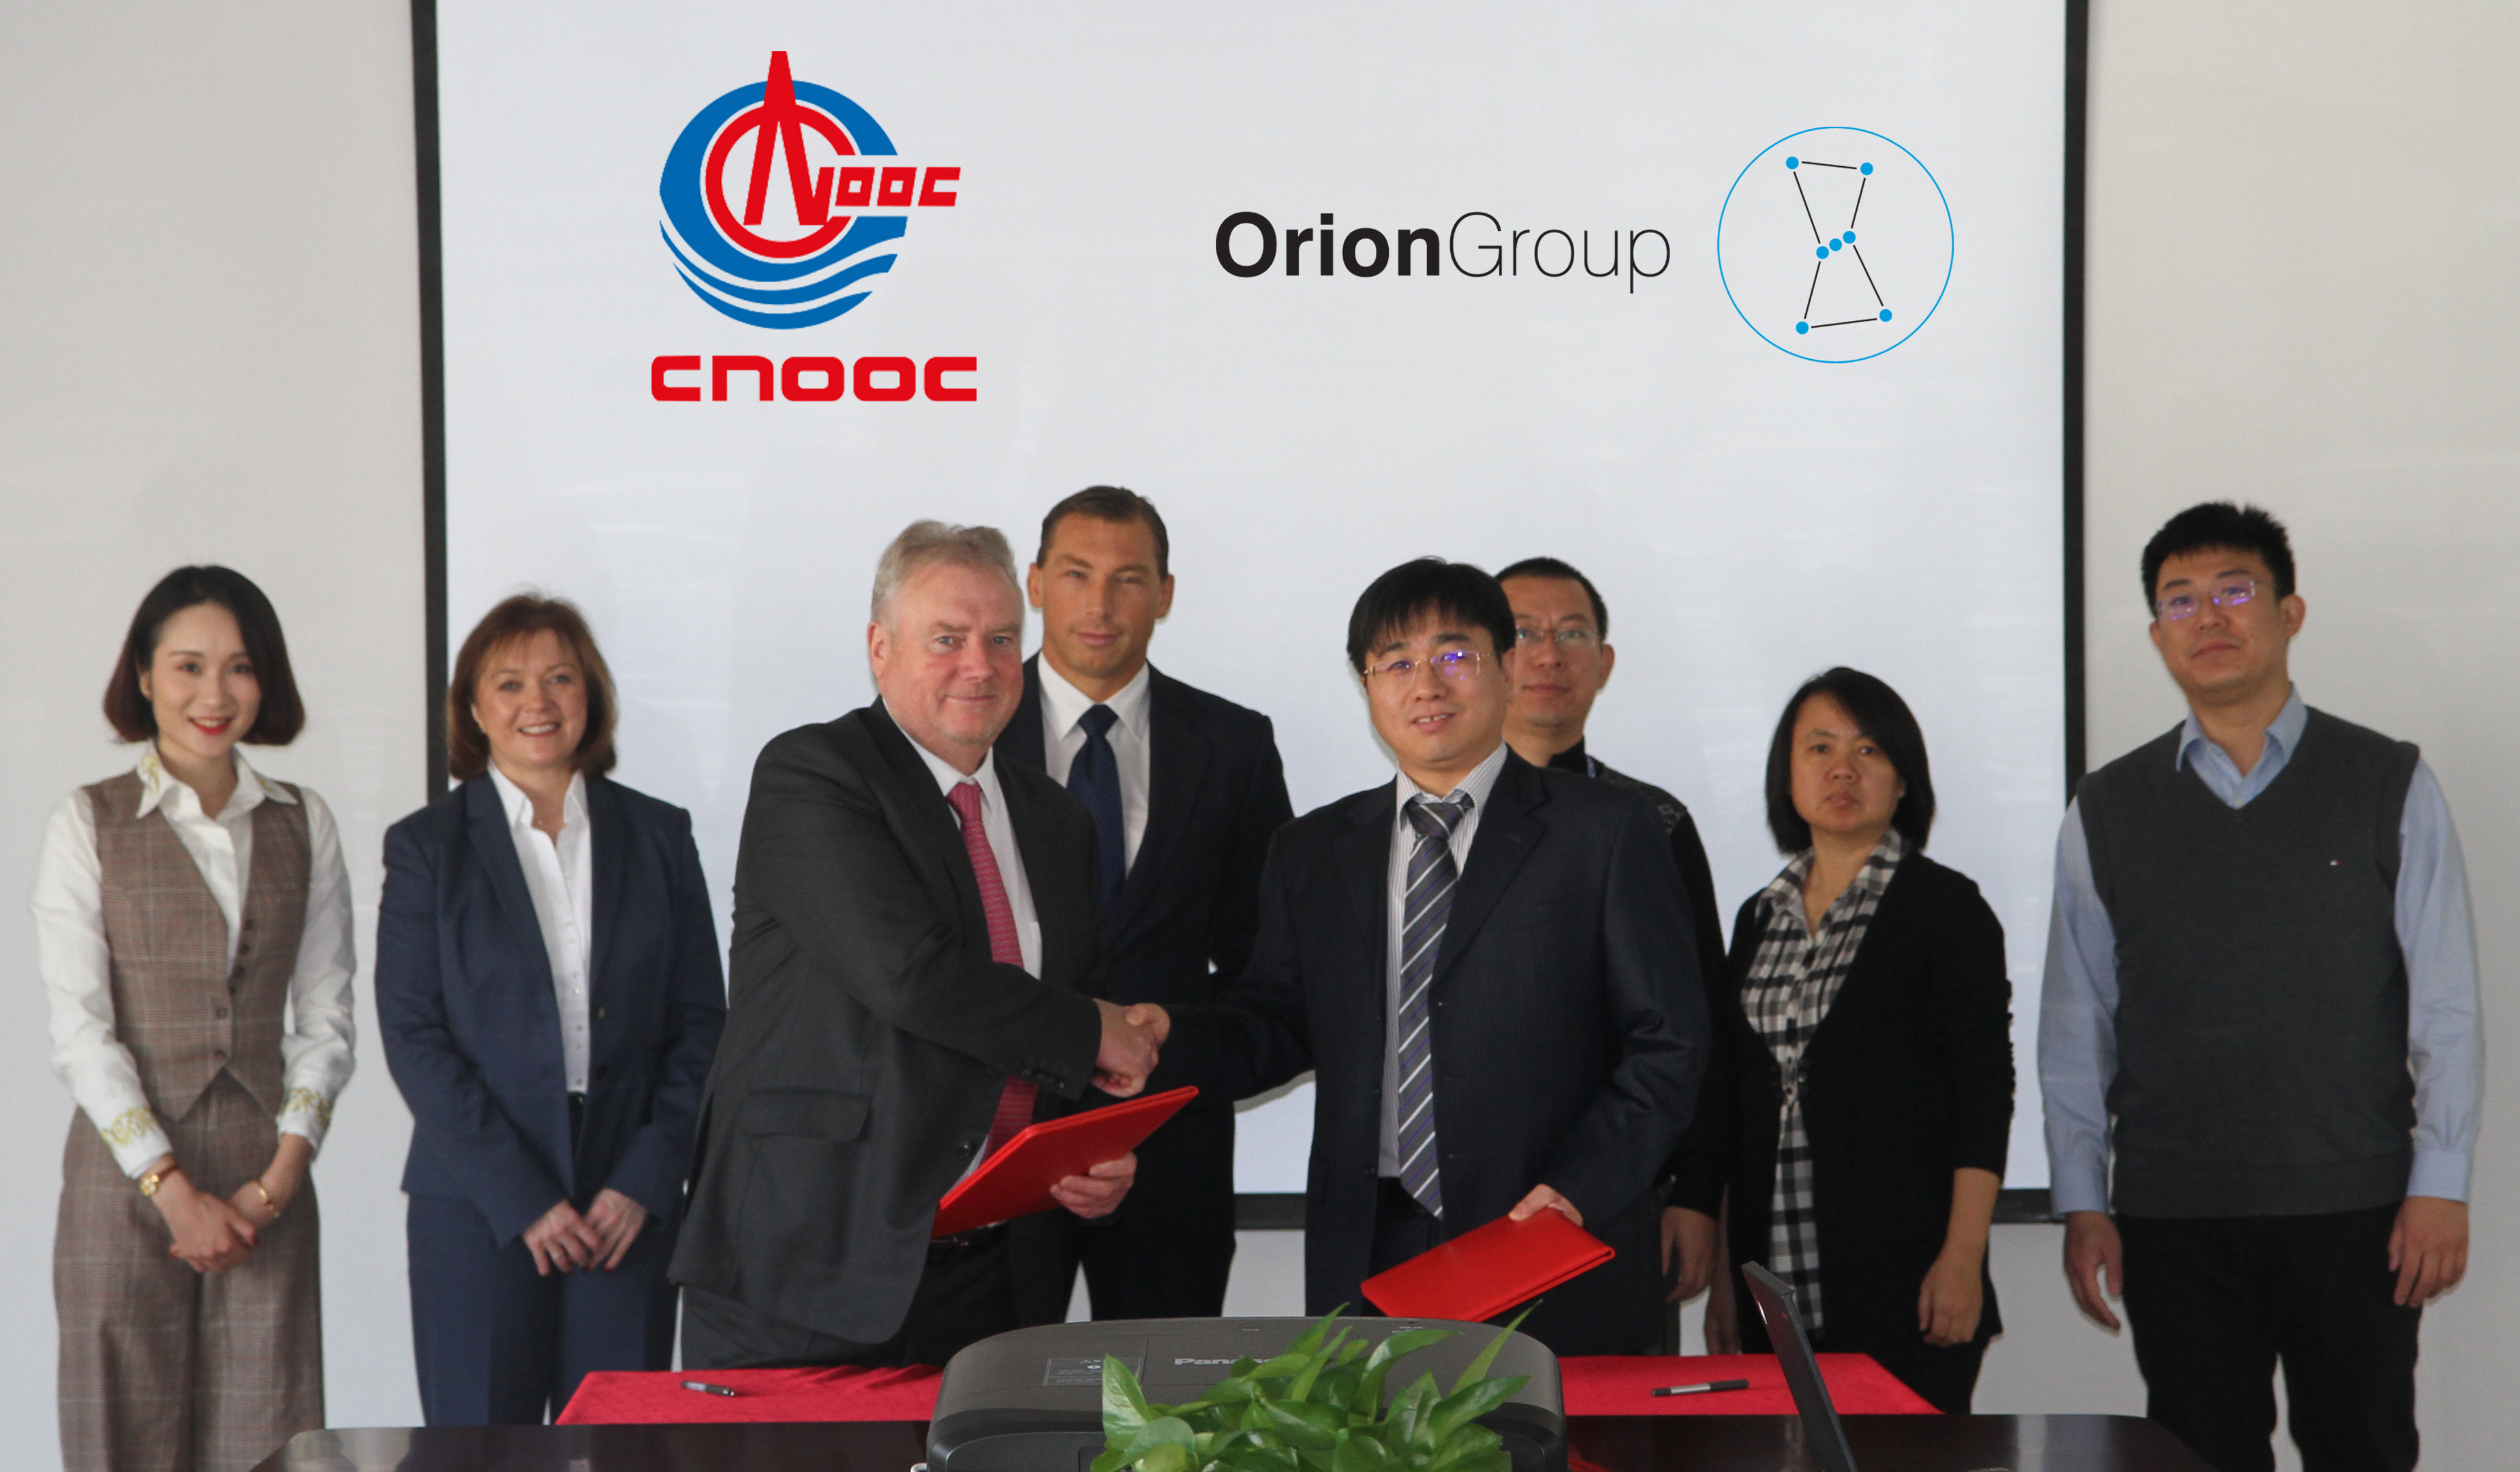 CNOOC and Orion Group have struck a deal